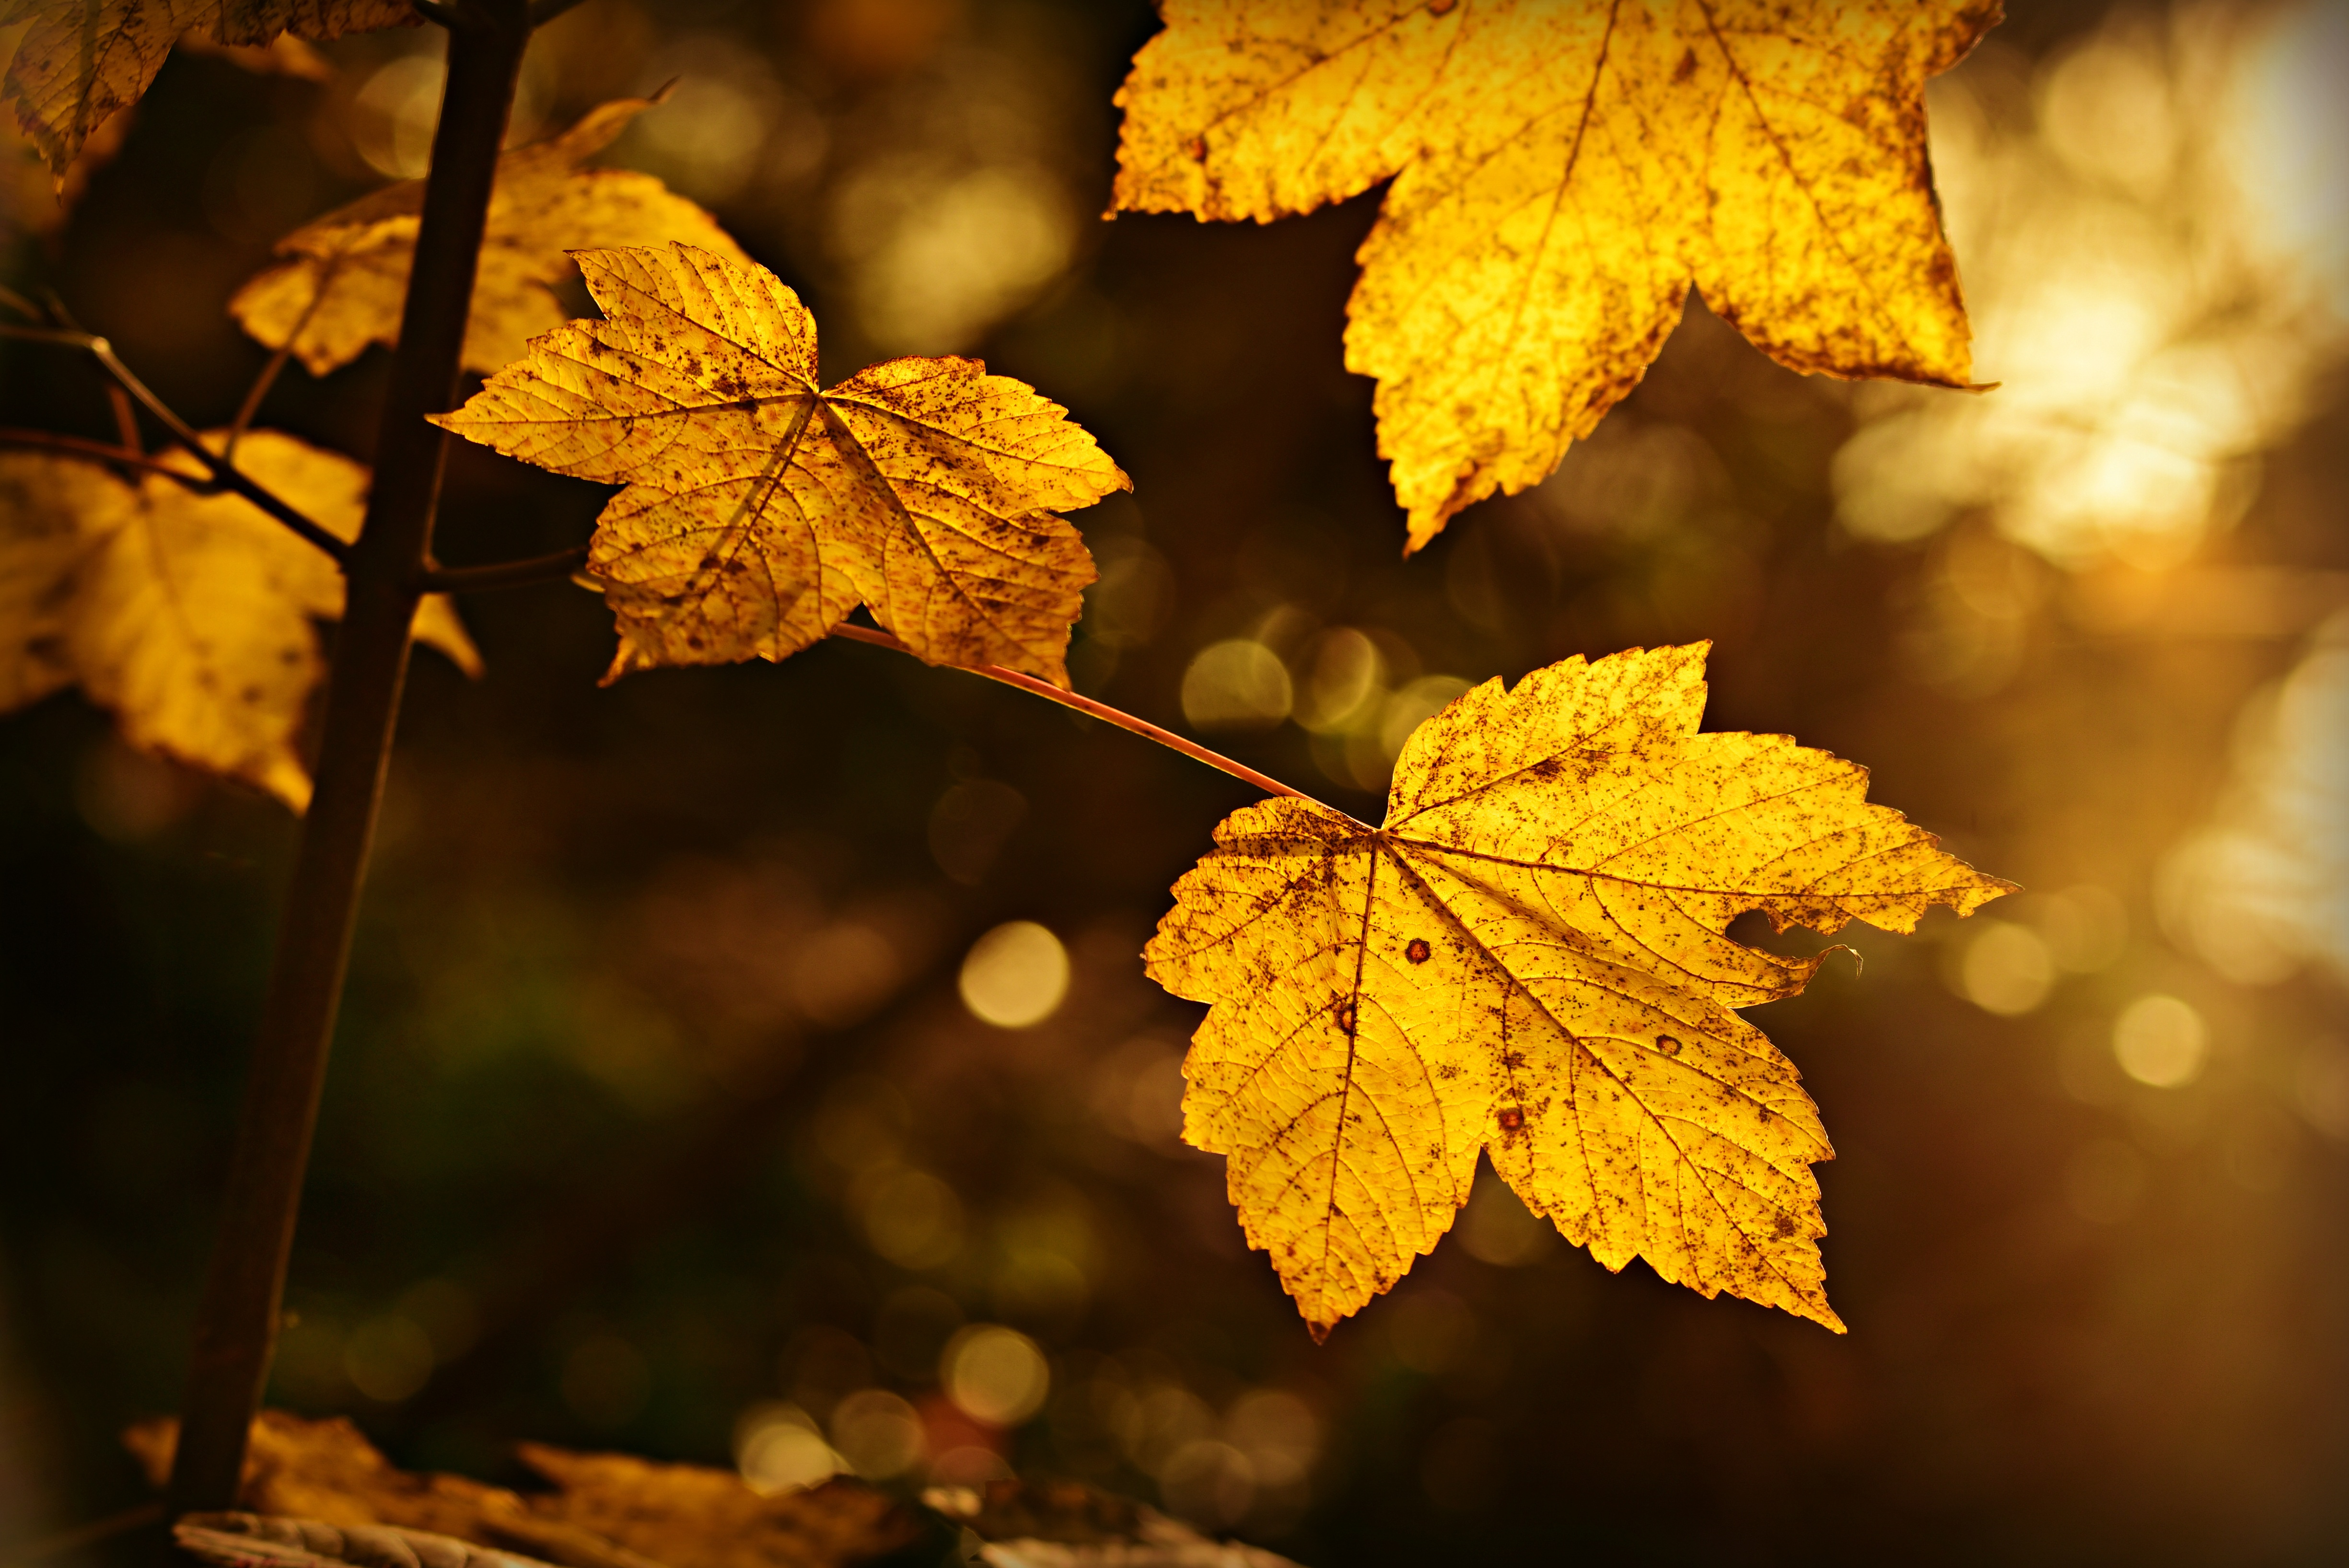 143372 download wallpaper Macro, Sheet, Leaf, Autumn, Branch, Blur, Smooth screensavers and pictures for free